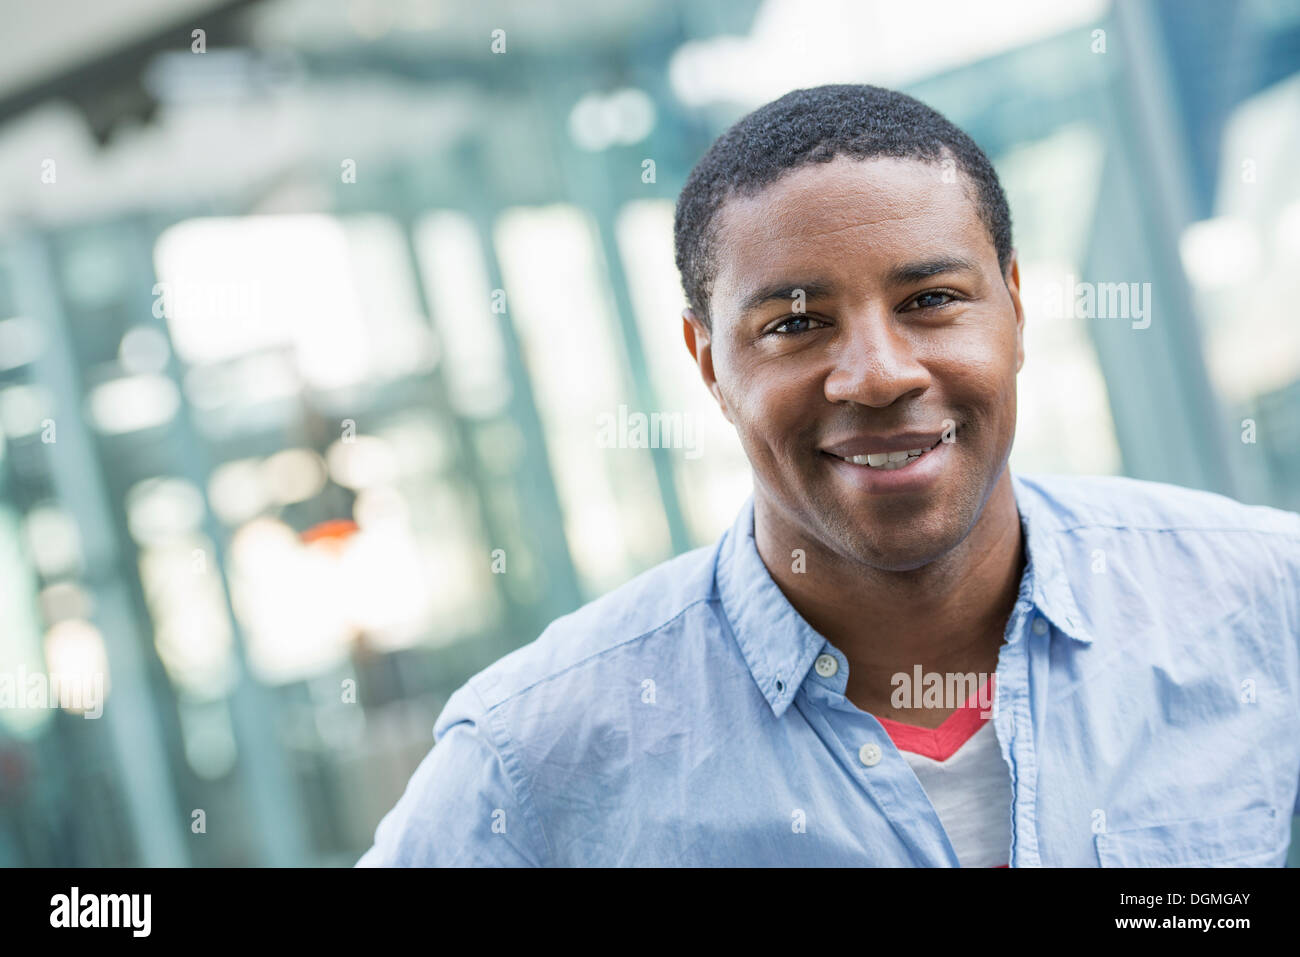 Summer in the city. Business people in casual clothes. A handsome man in a blue shirt. - Stock Image